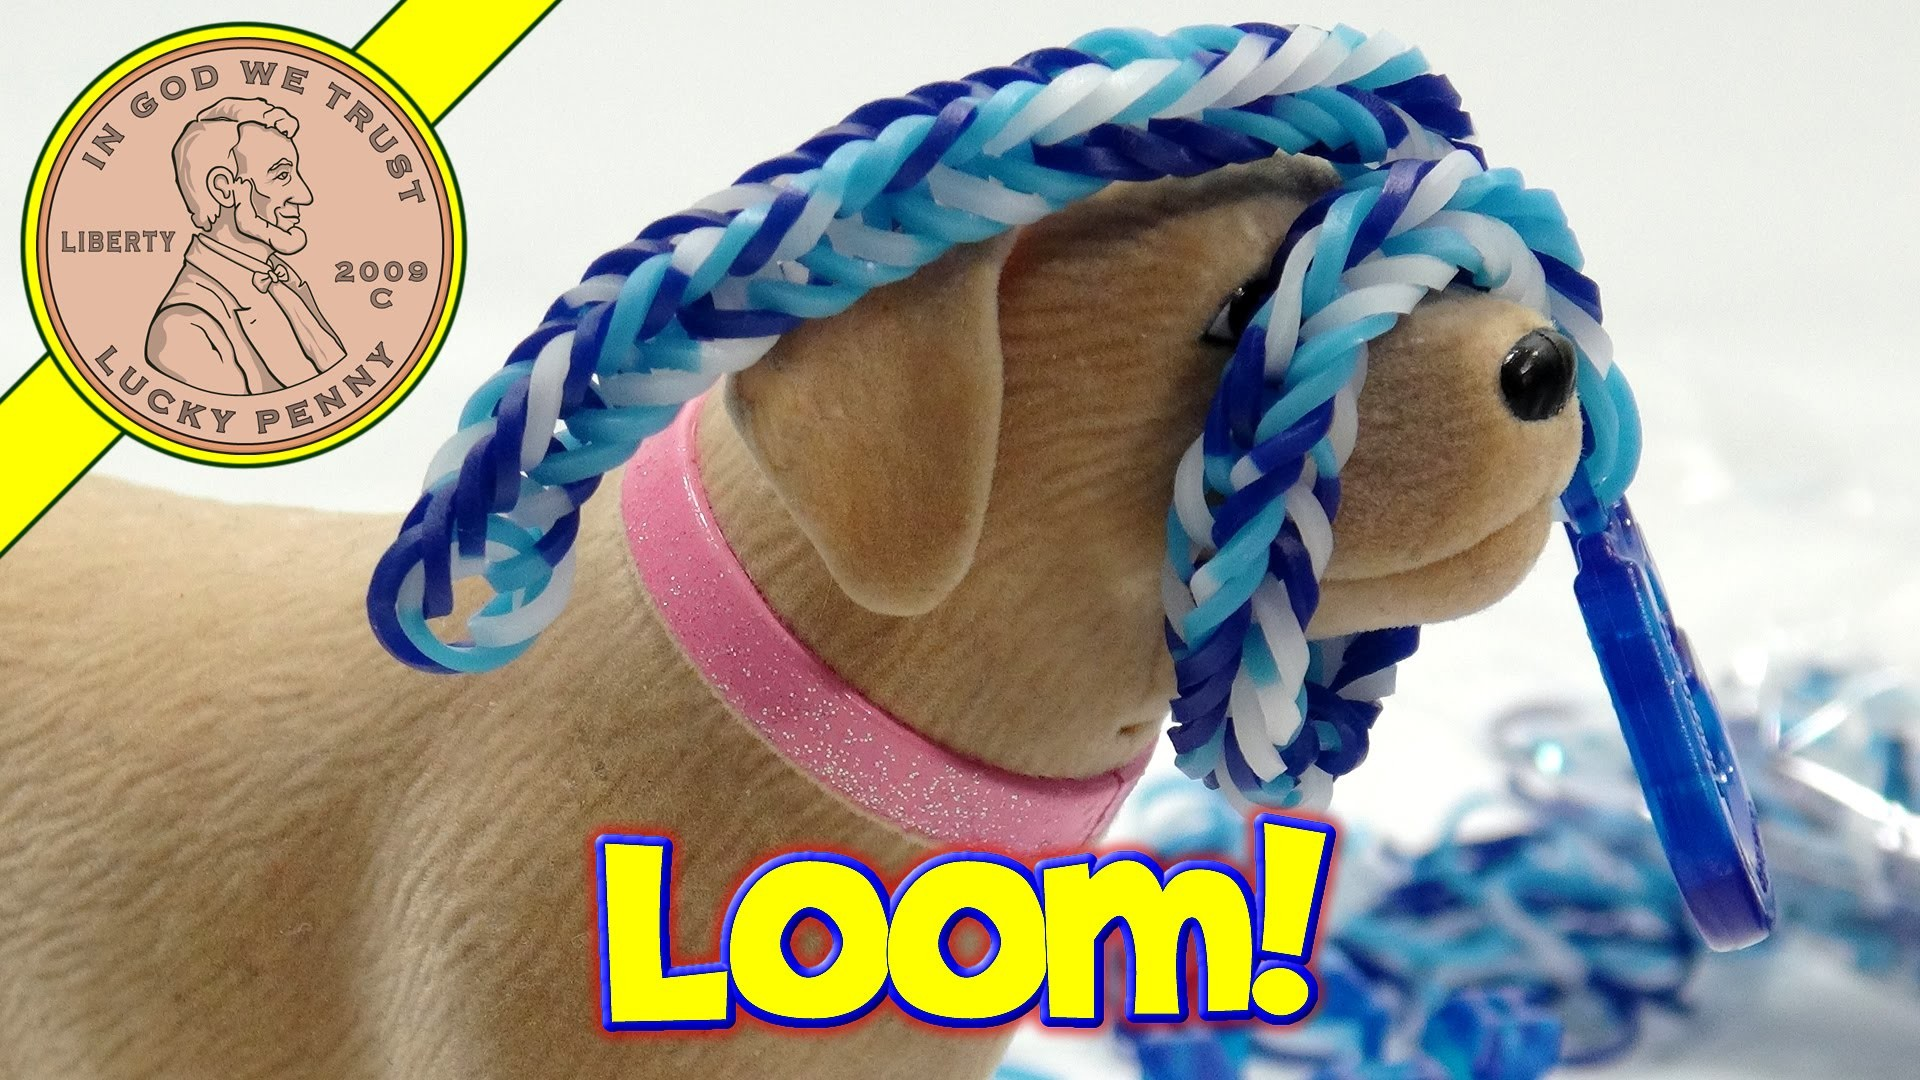 Finger Loom By Rainbow Loom, I Totally Mess Up!